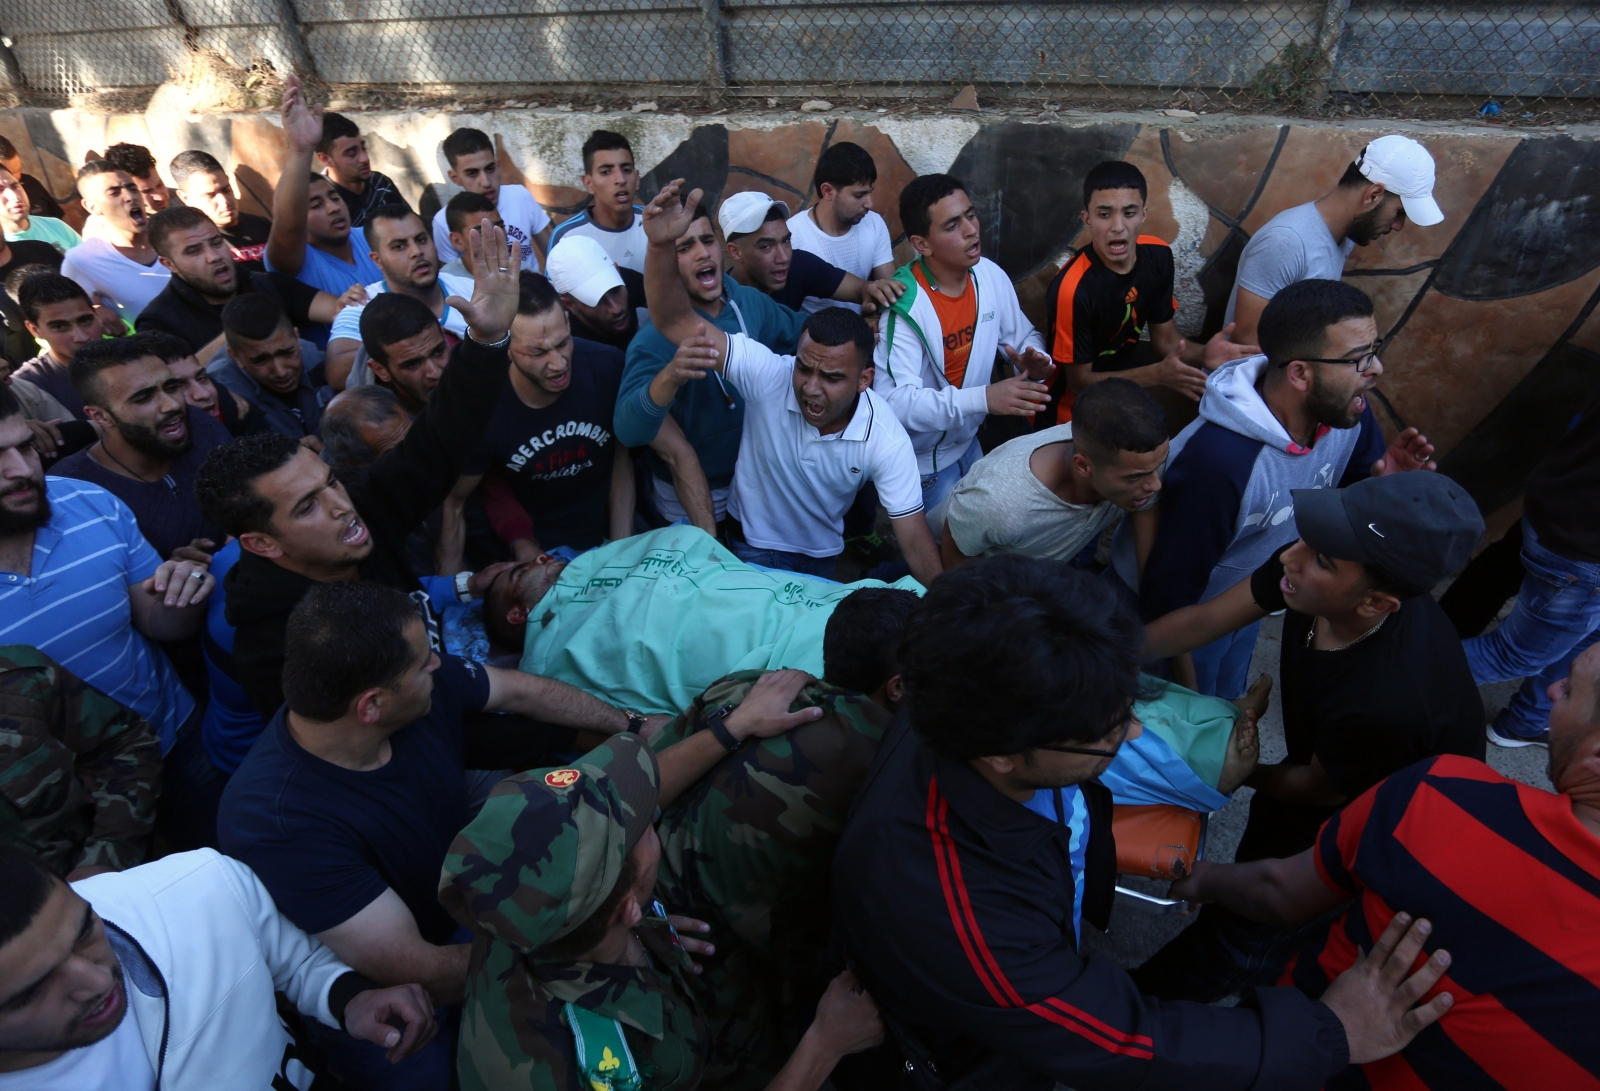 Palestinians carry the body of